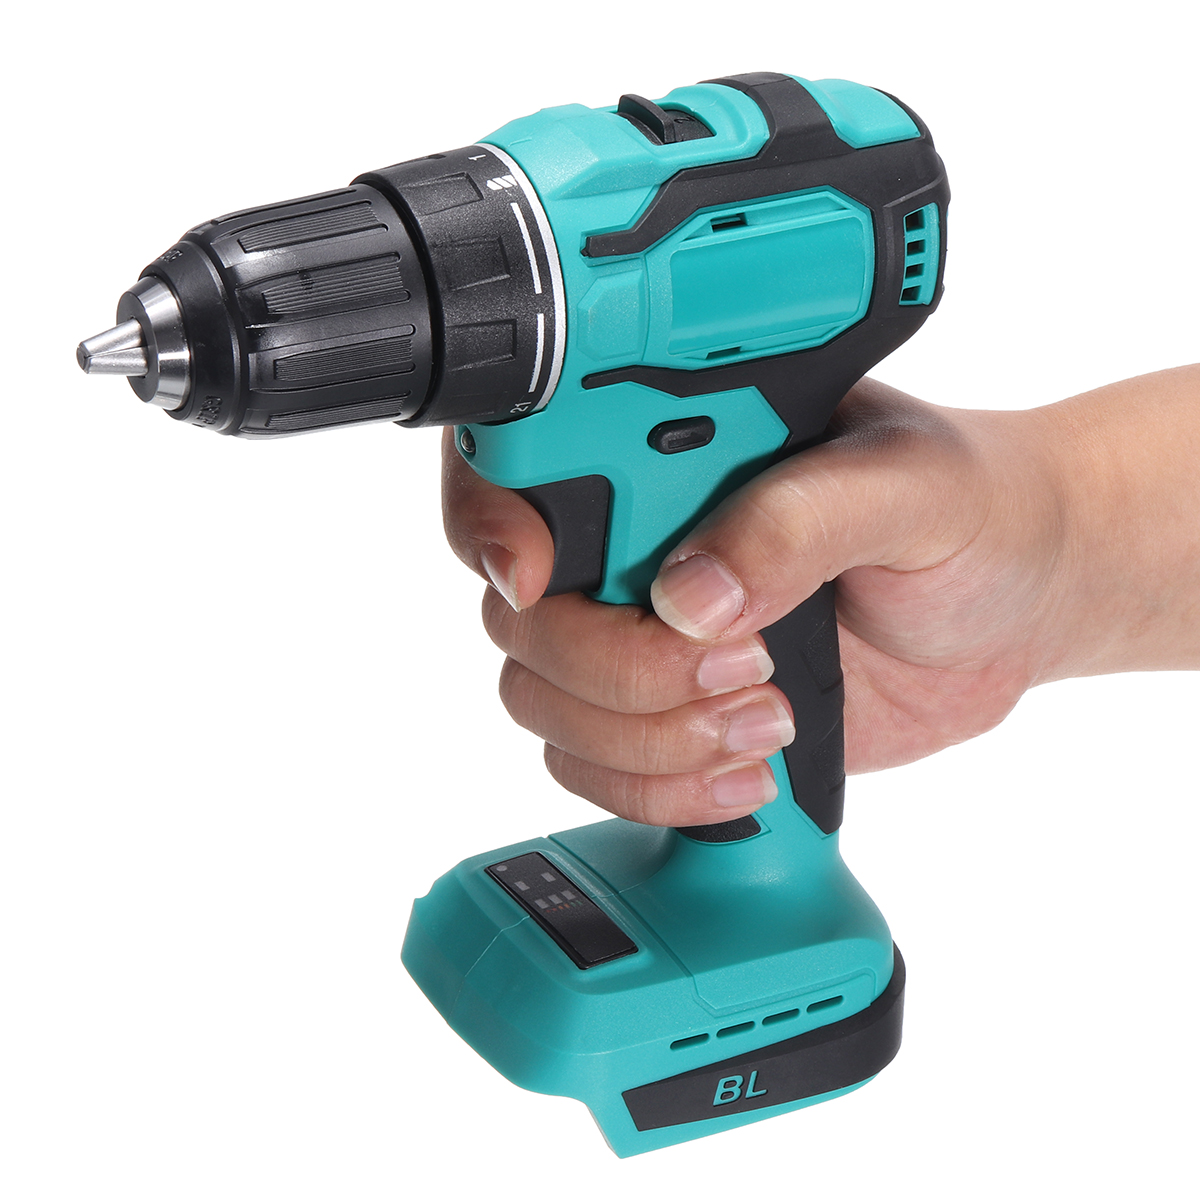 88V 13mm Max Electric Screwdriver Professional 1800rpm Cordless Drill Household Wireless Power Driver For Makita Battery